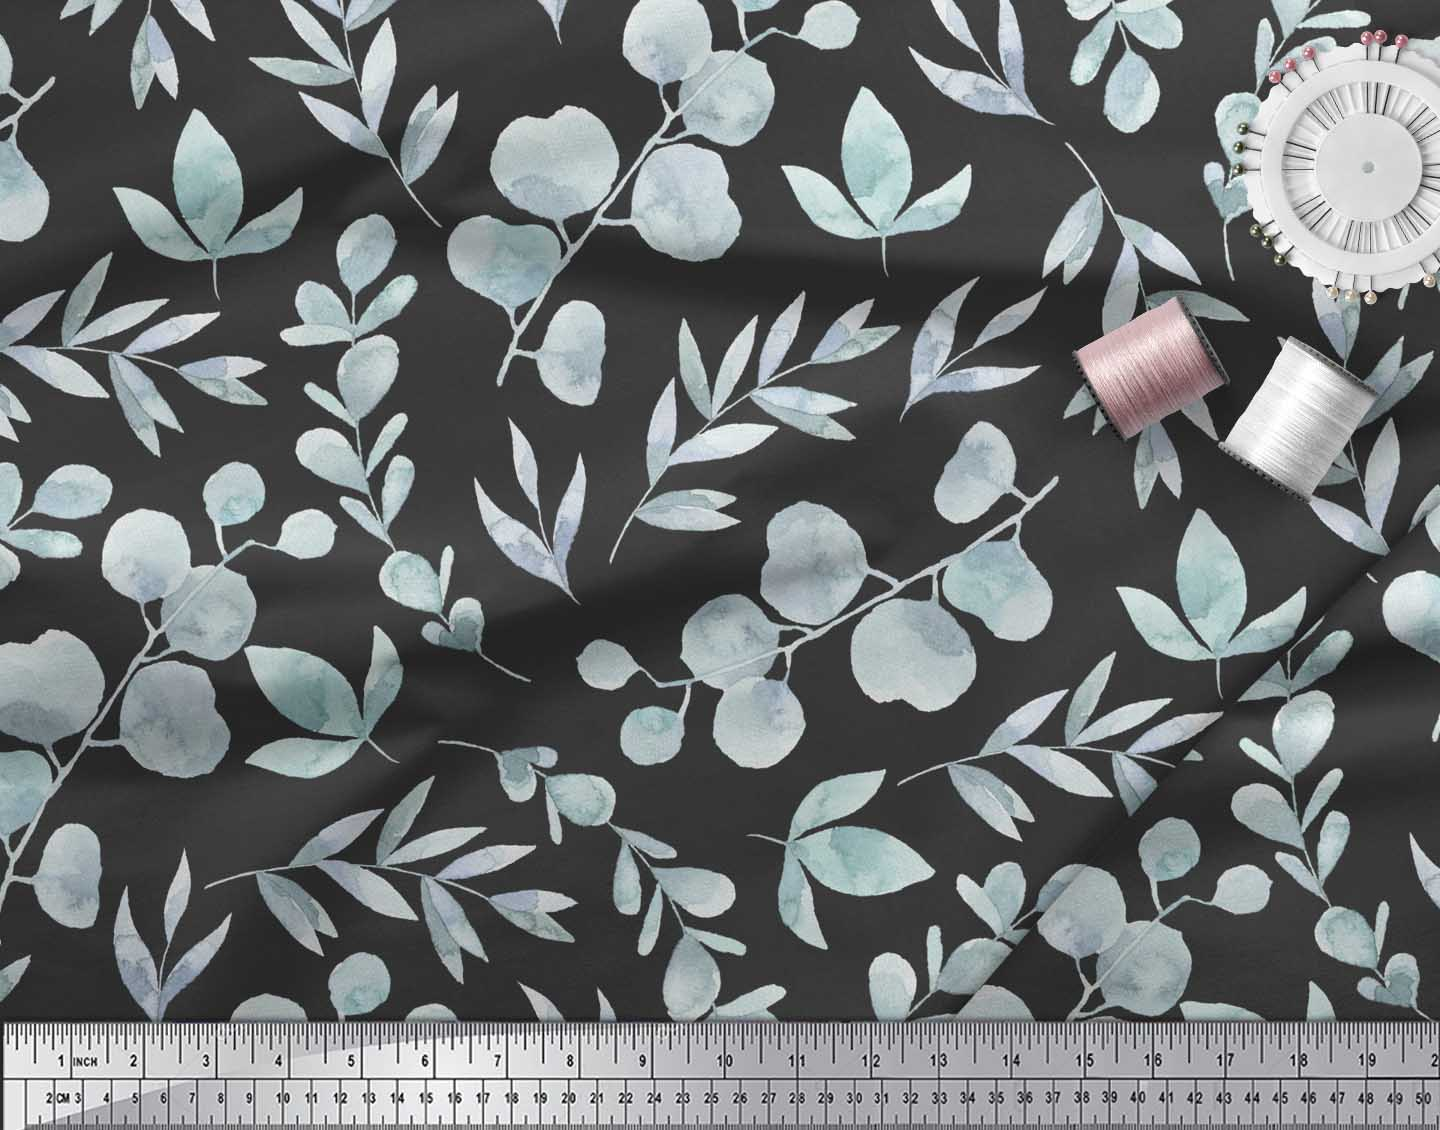 Soimoi-Black-Cotton-Poplin-Fabric-Flower-Leaves-Printed-Craft-Fabric-1LM thumbnail 3